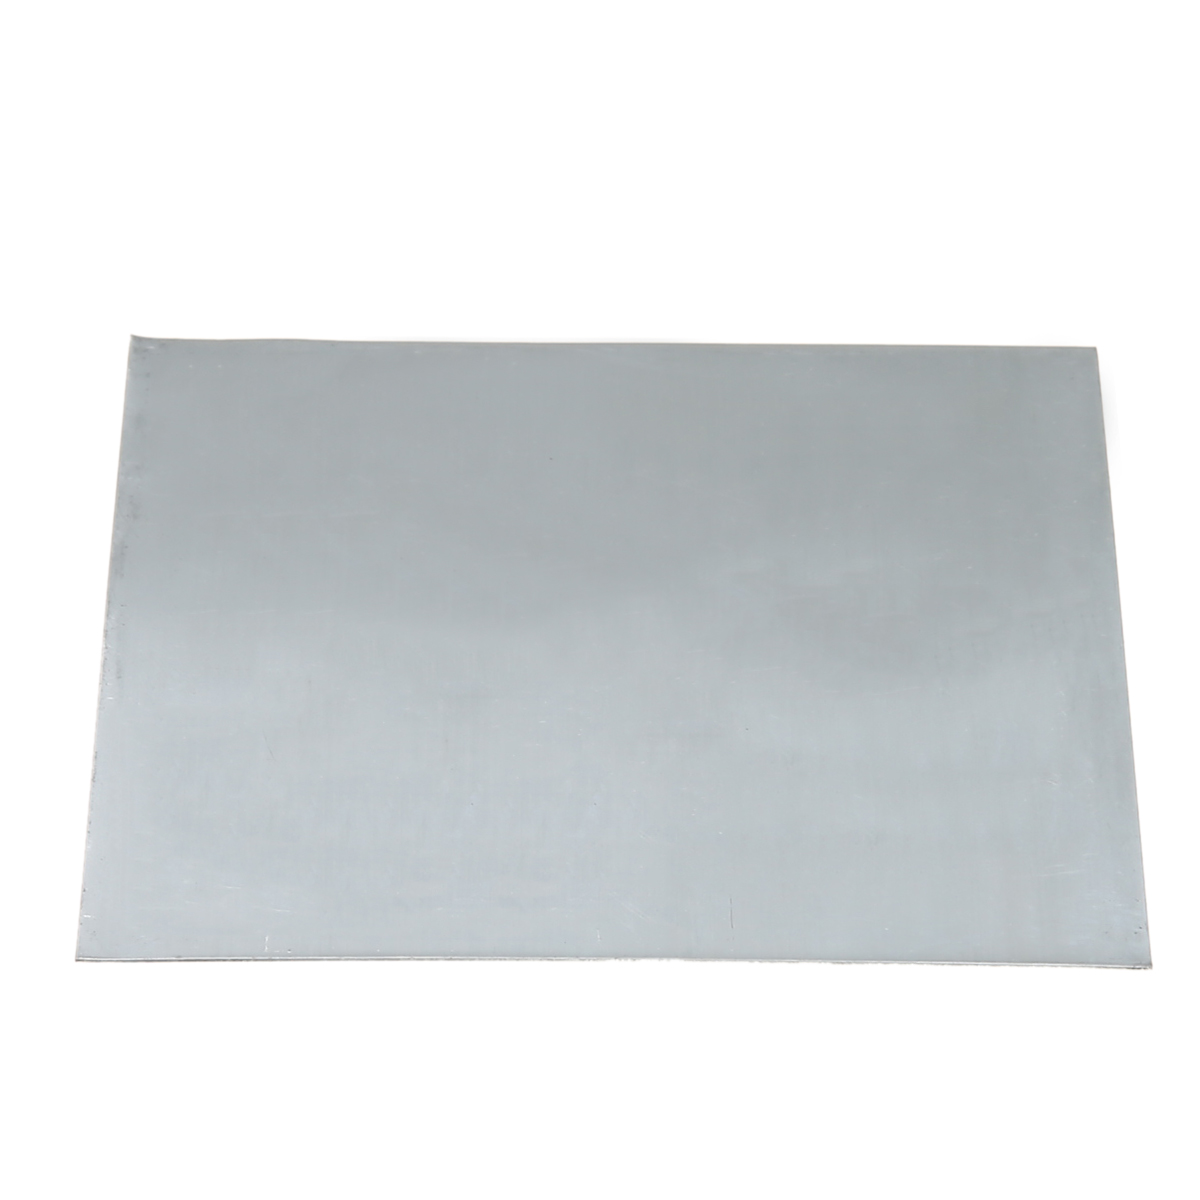 1pc 100mm*100mm*0.2mm High Purity 99.9% Pure Zinc Zn Sheet Bluish-white Metal Zinc Plate Durable For Science Lab